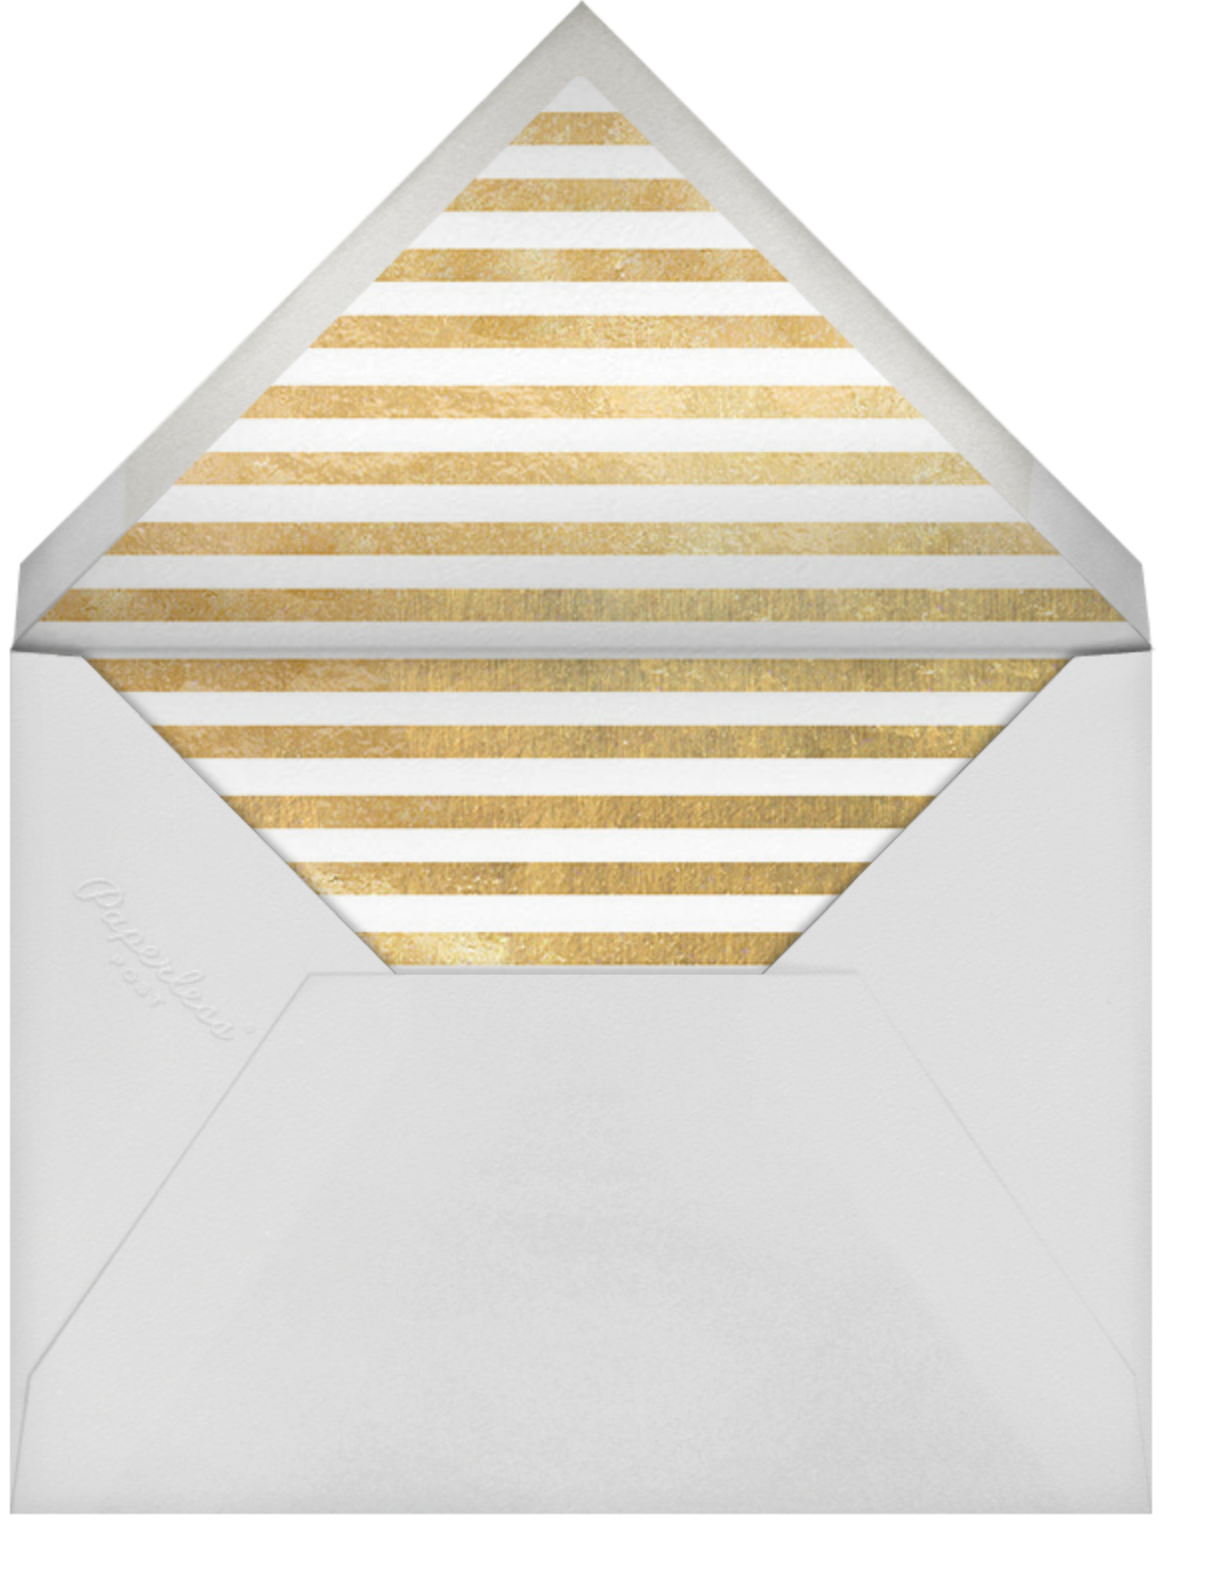 Confetti (Save the Date) - Aqua/Gold - kate spade new york - Save the date - envelope back